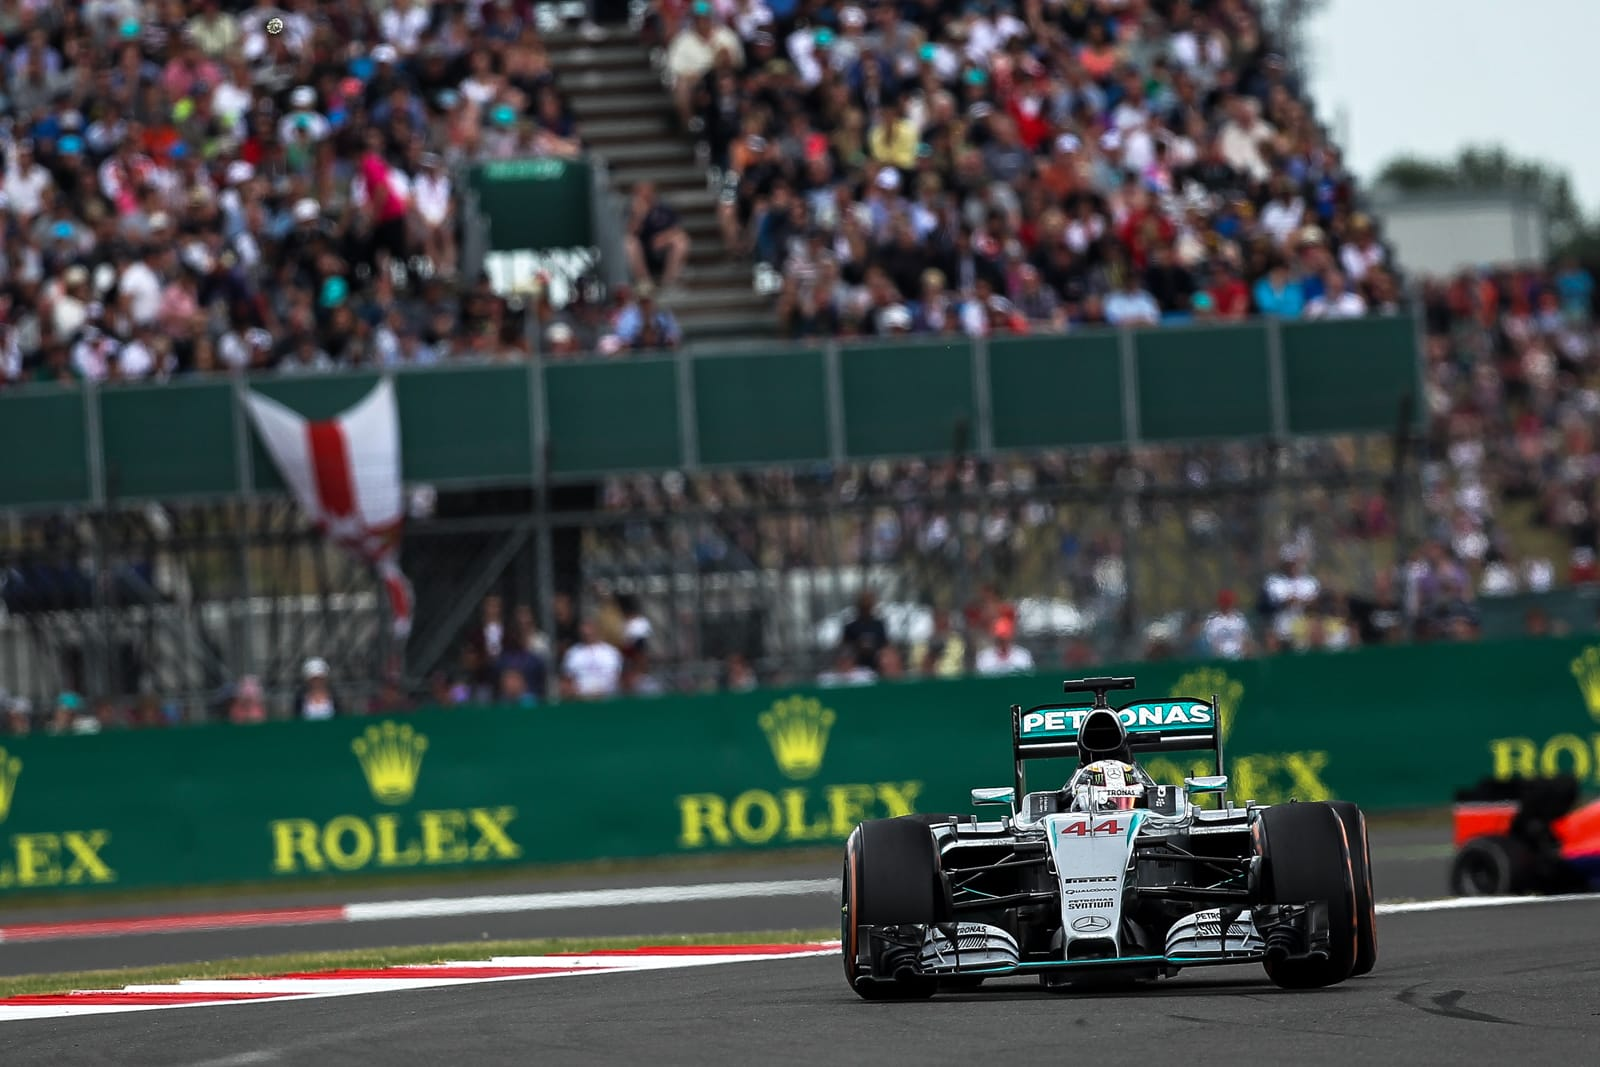 Silverstone owner 'posturing' over future of British Grand Prix